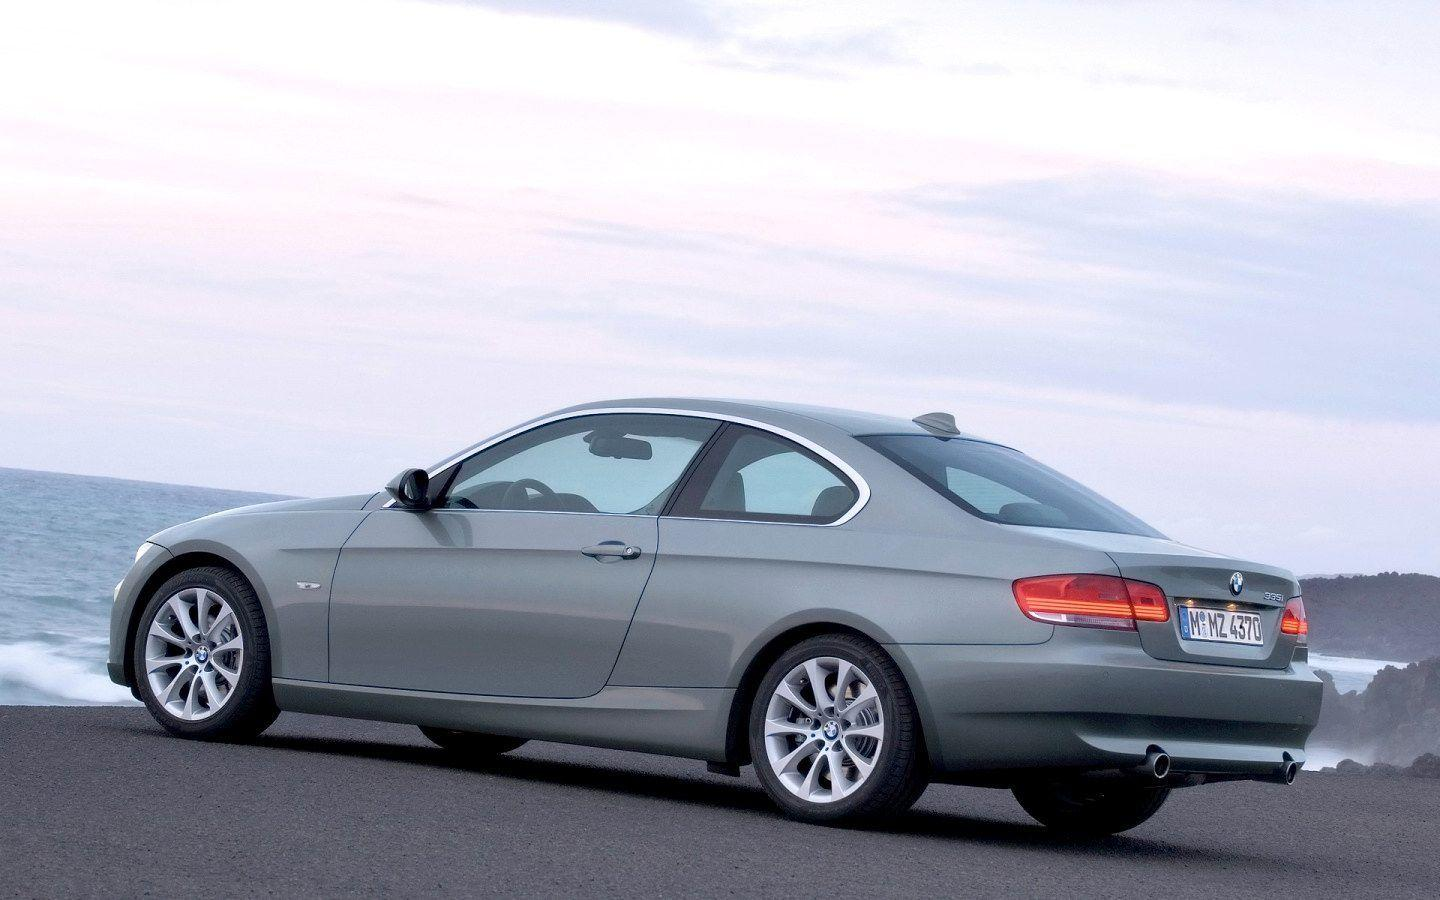 2007 BMW 335i Coupe Wallpaper 10 - 1440x900